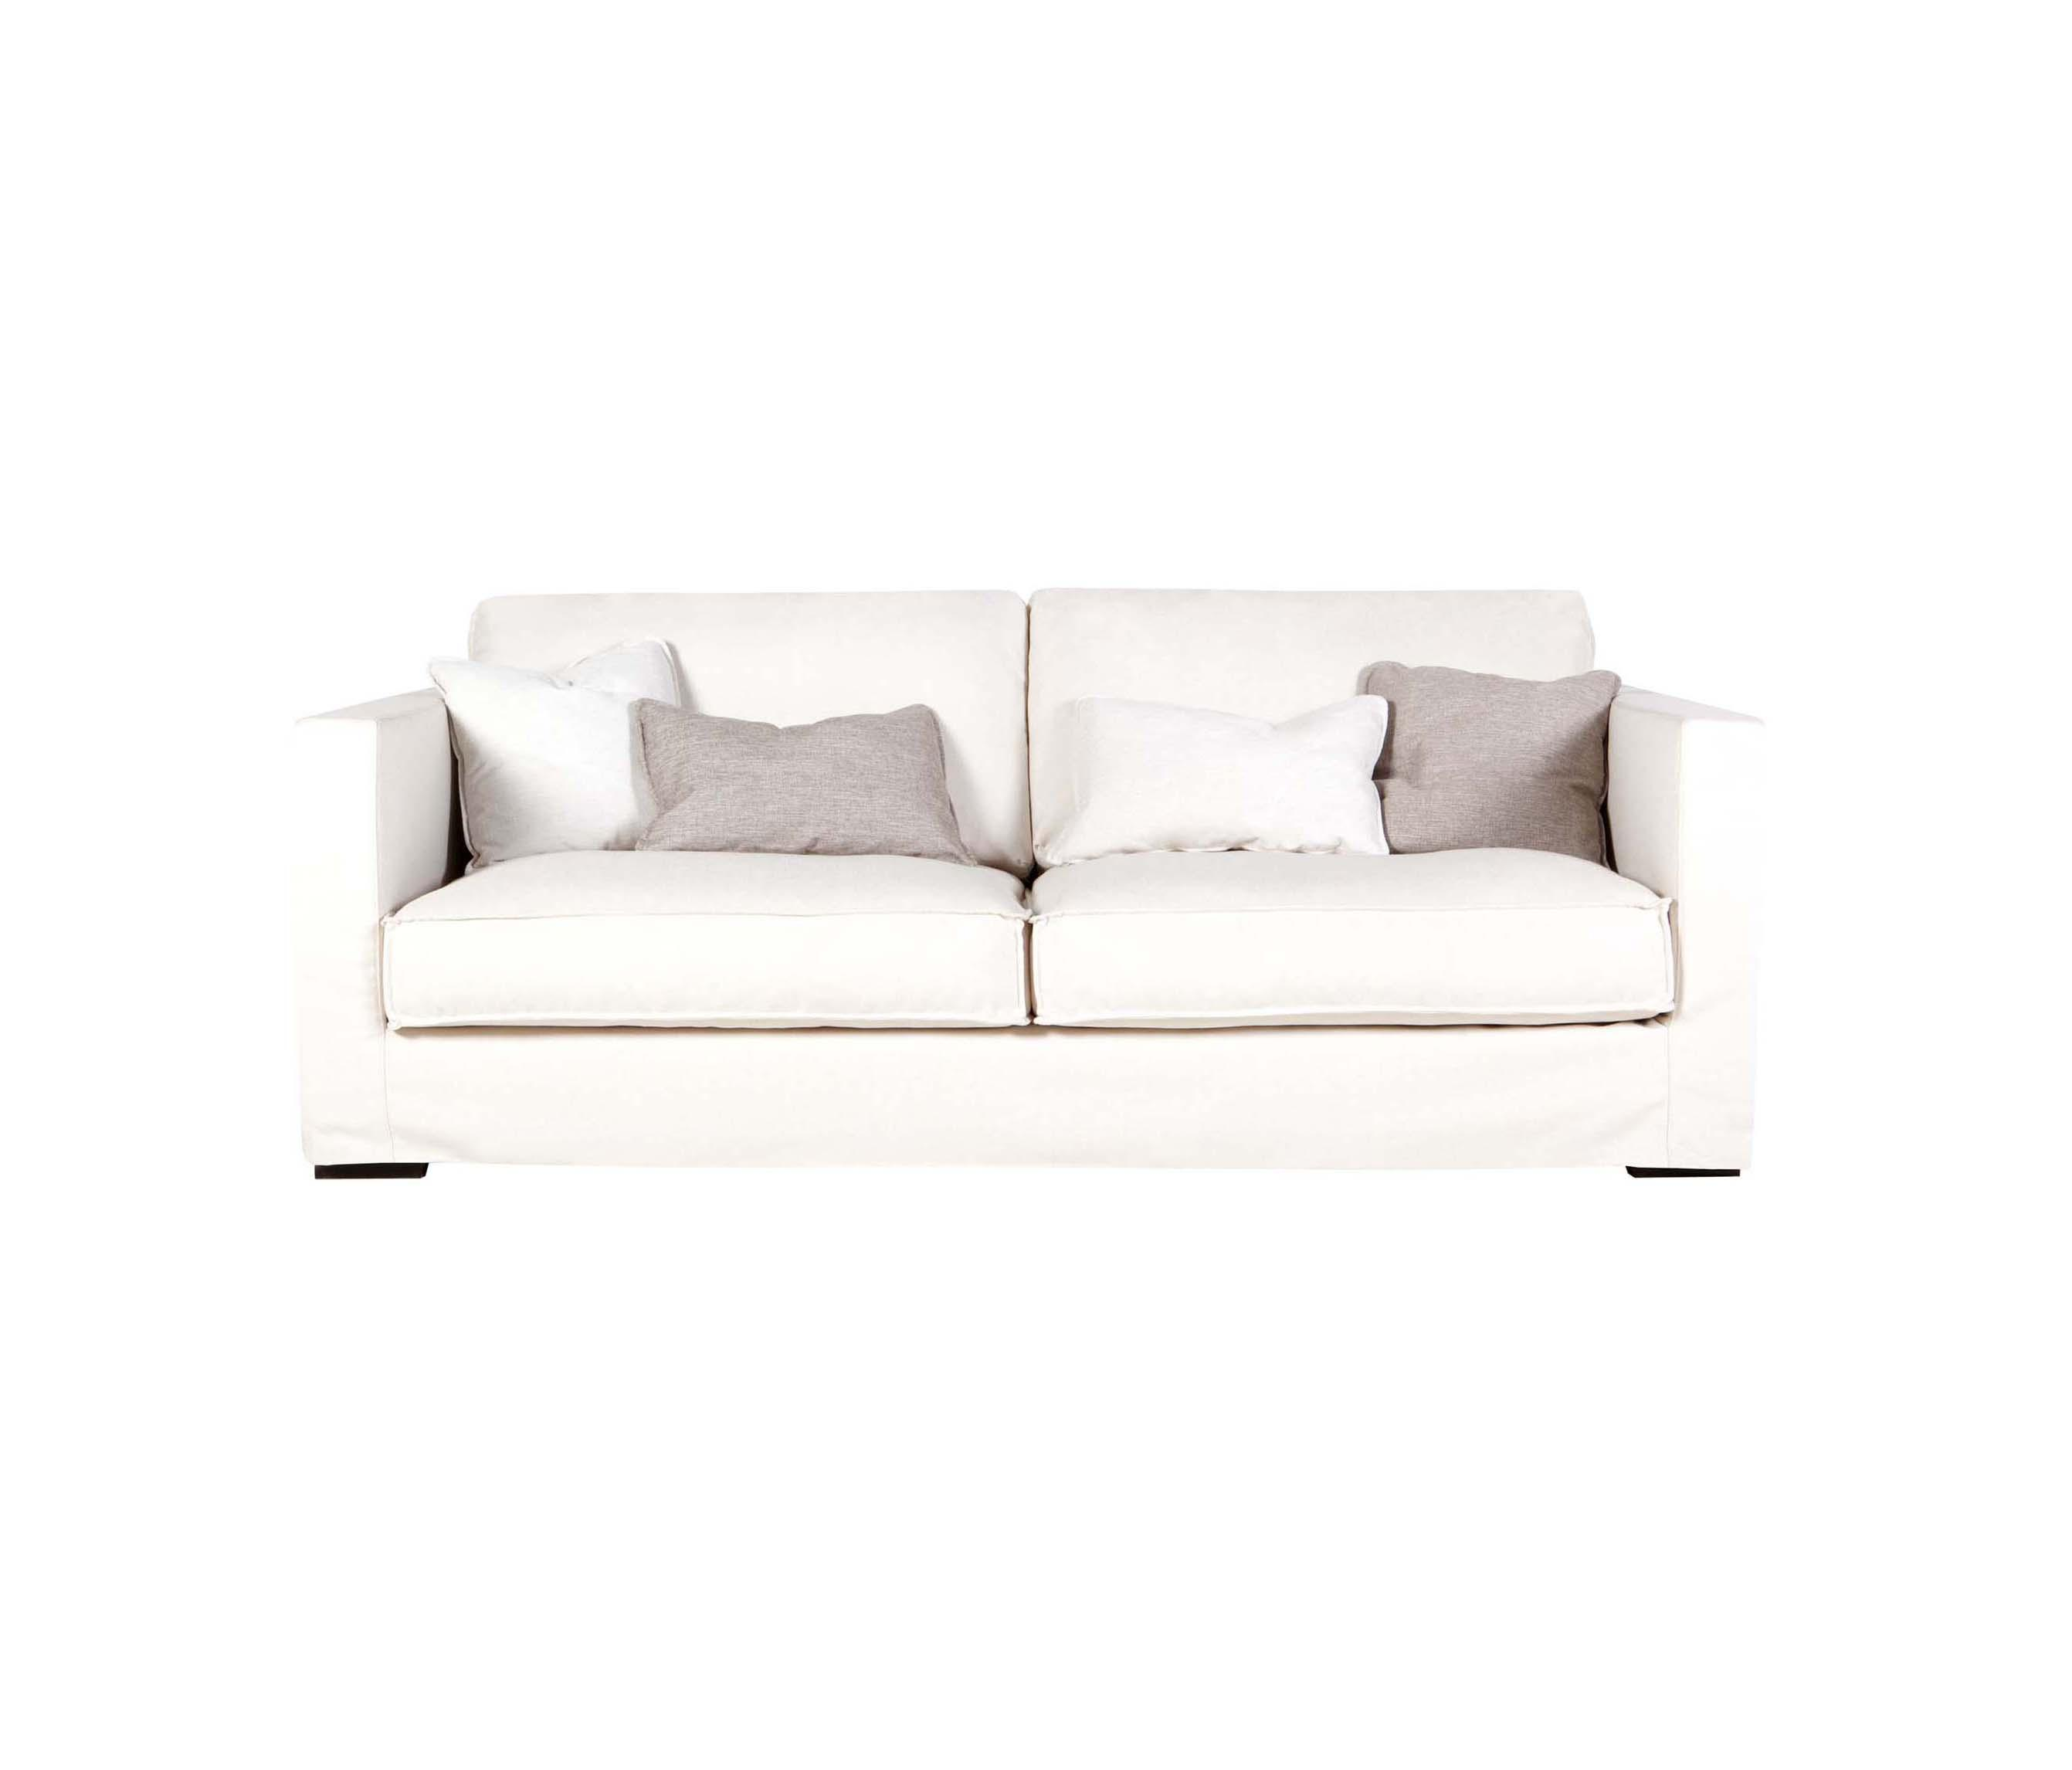 Peachy Cloud Sofas From Sits Architonic Andrewgaddart Wooden Chair Designs For Living Room Andrewgaddartcom